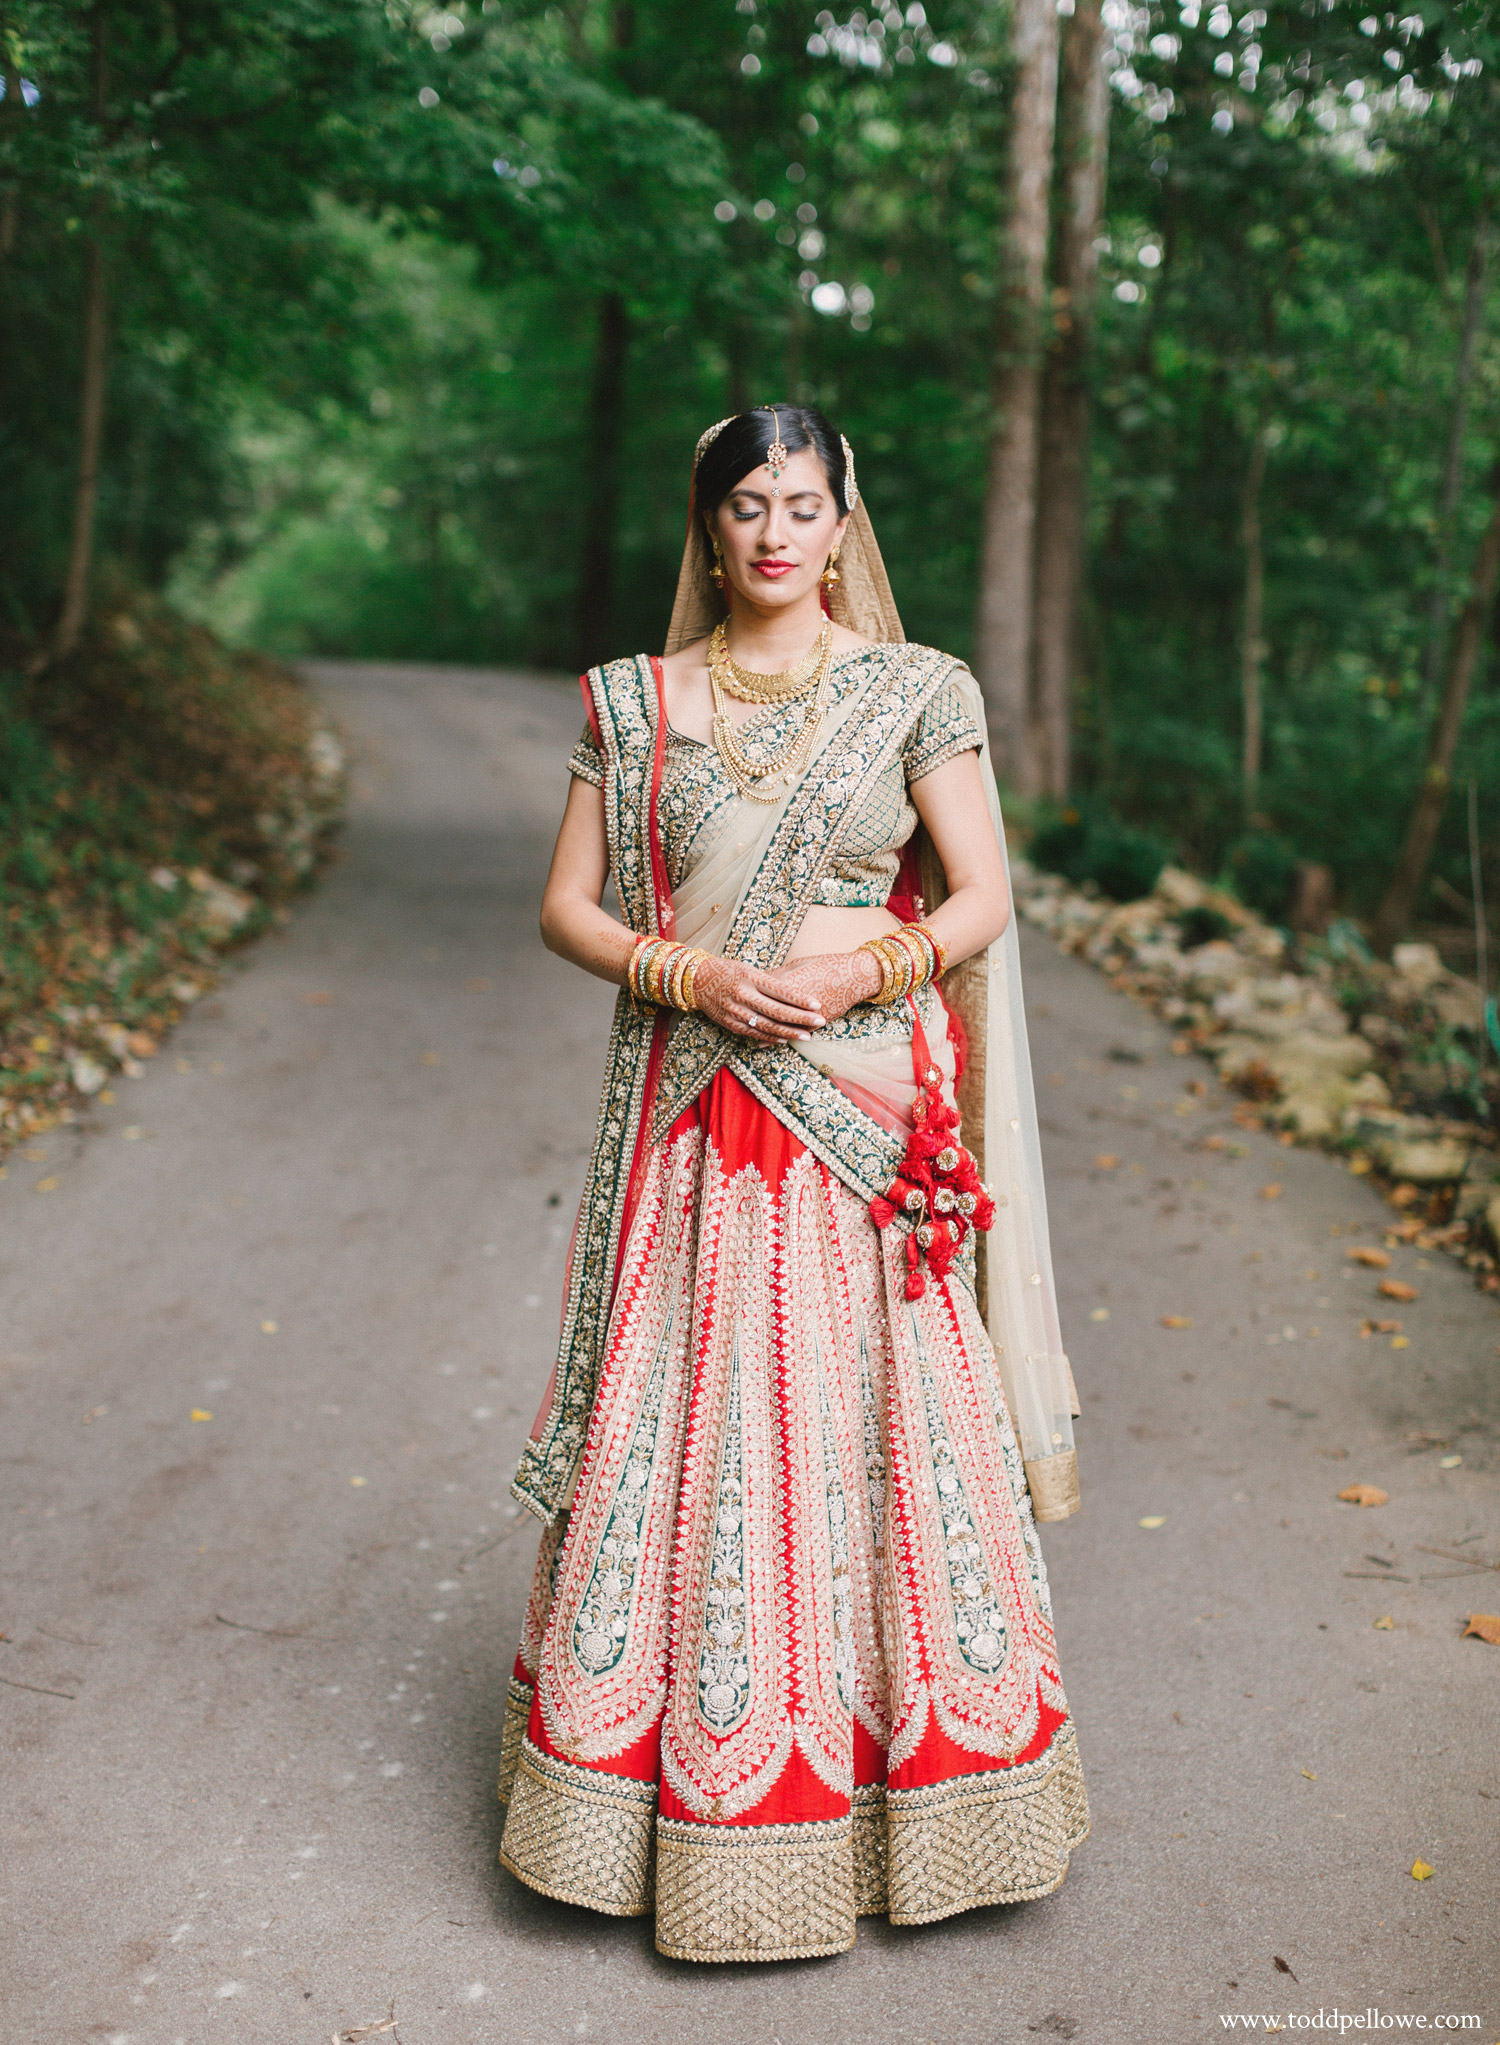 23-louisville-indian-wedding-146.jpg